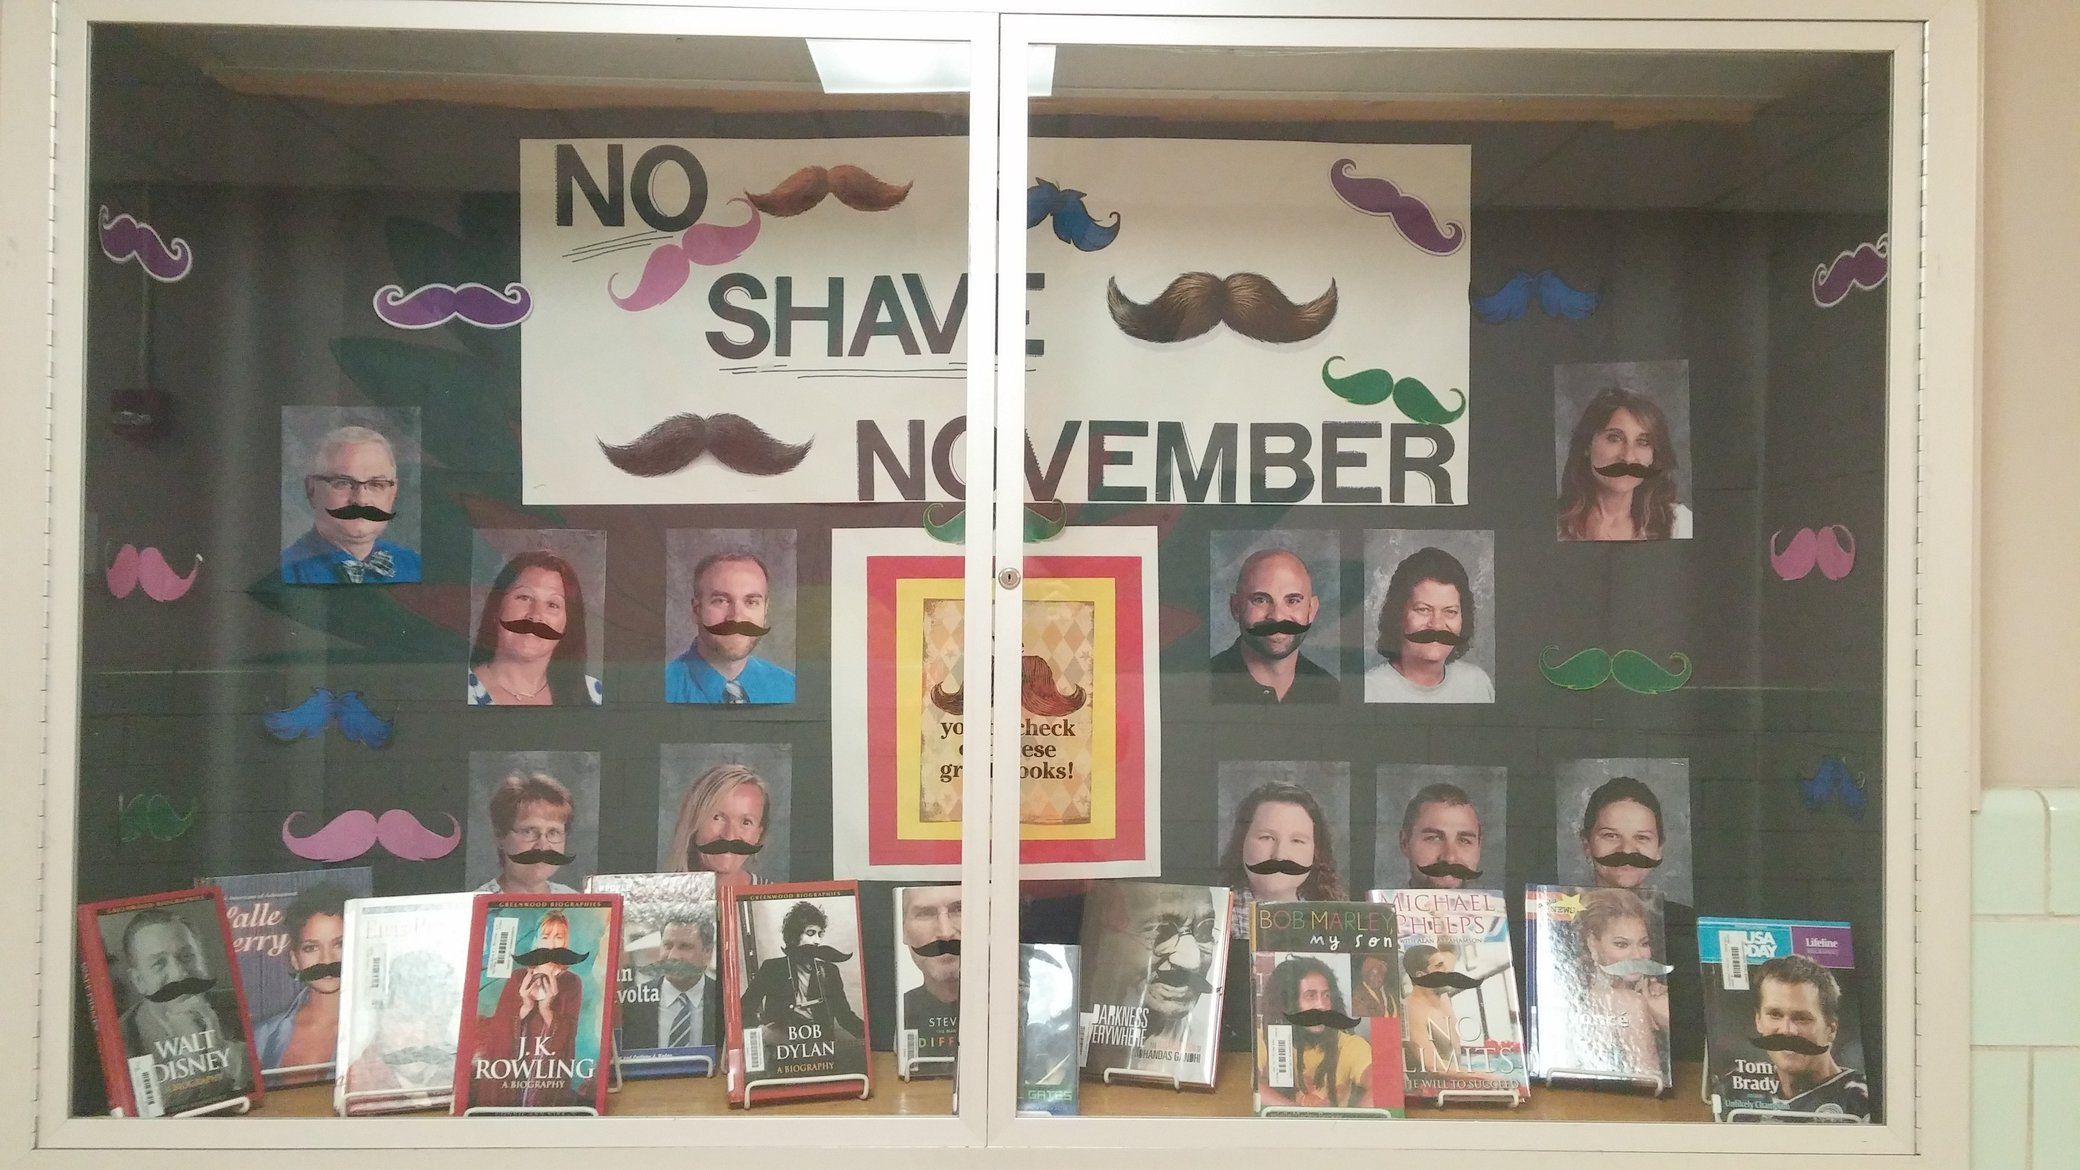 No Shave November is displayed and advertised around the school. Photo by: Ariel Barbera